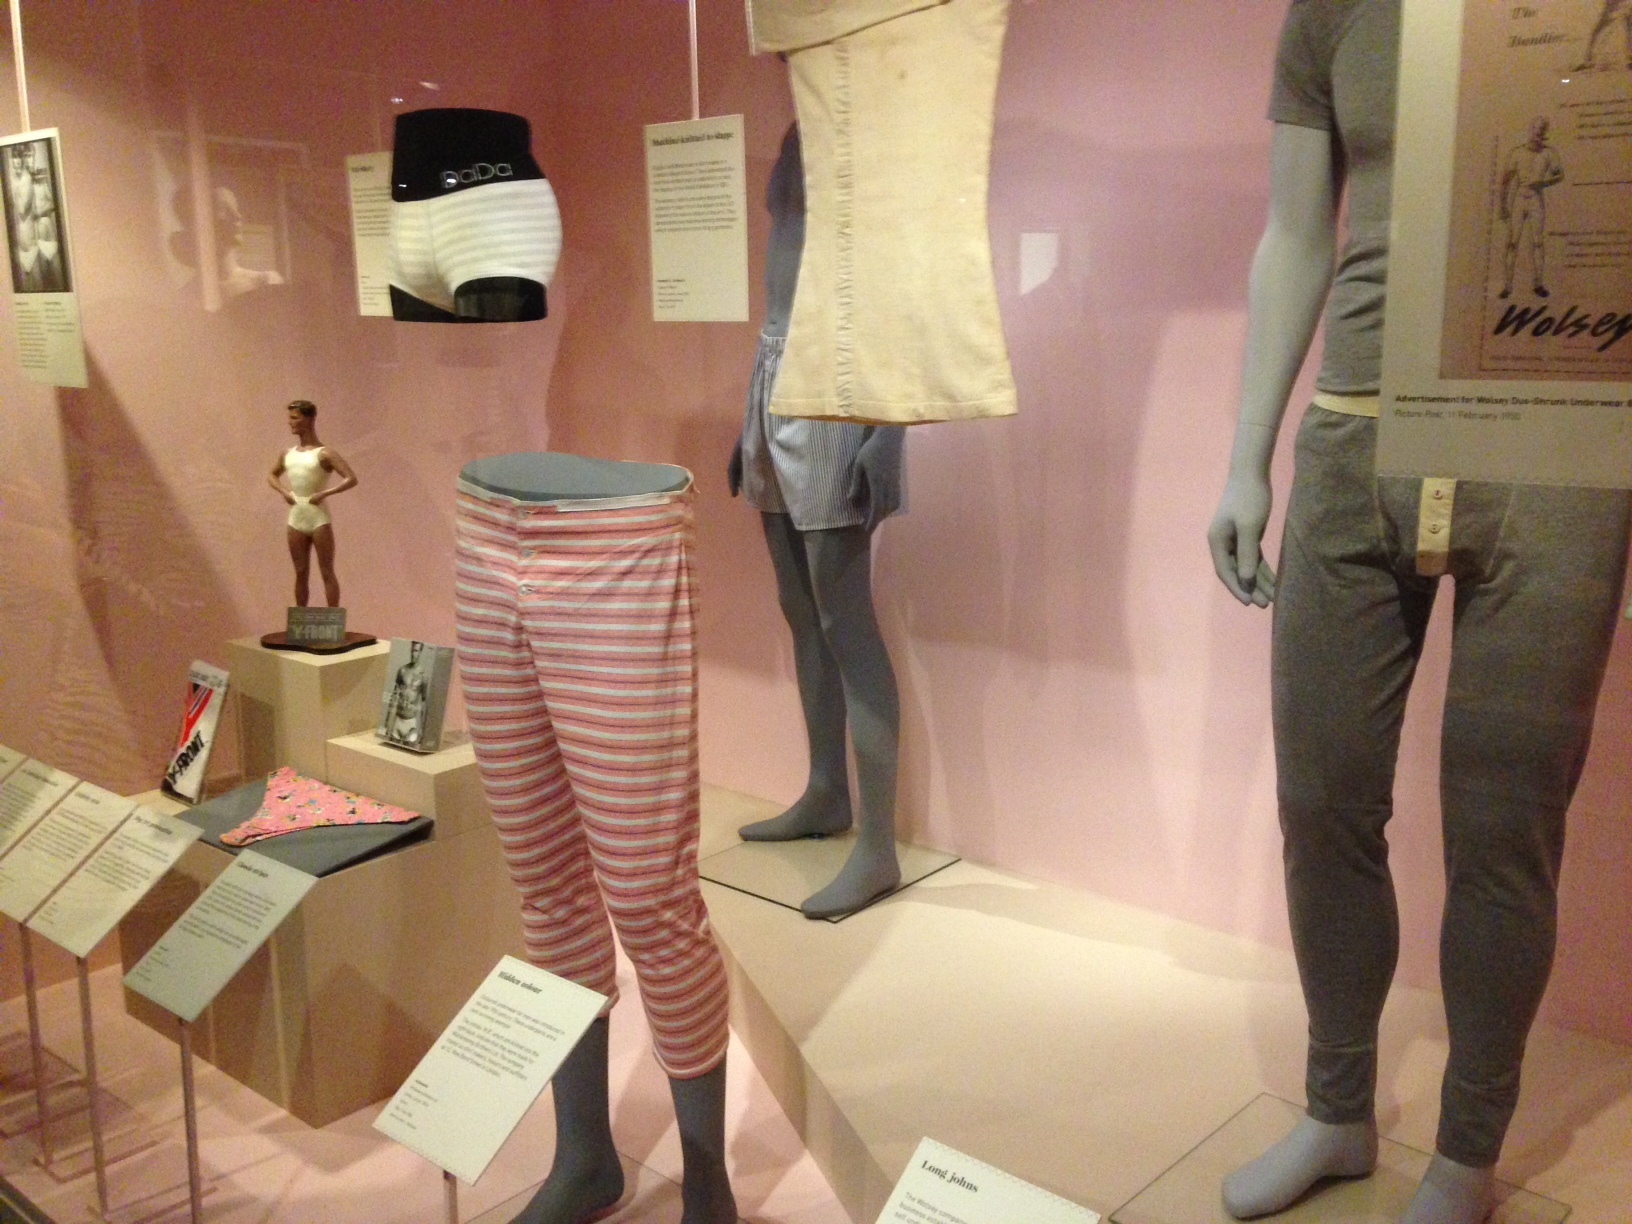 Gray Matter: Pants are on parade at V&A's latest exhibition